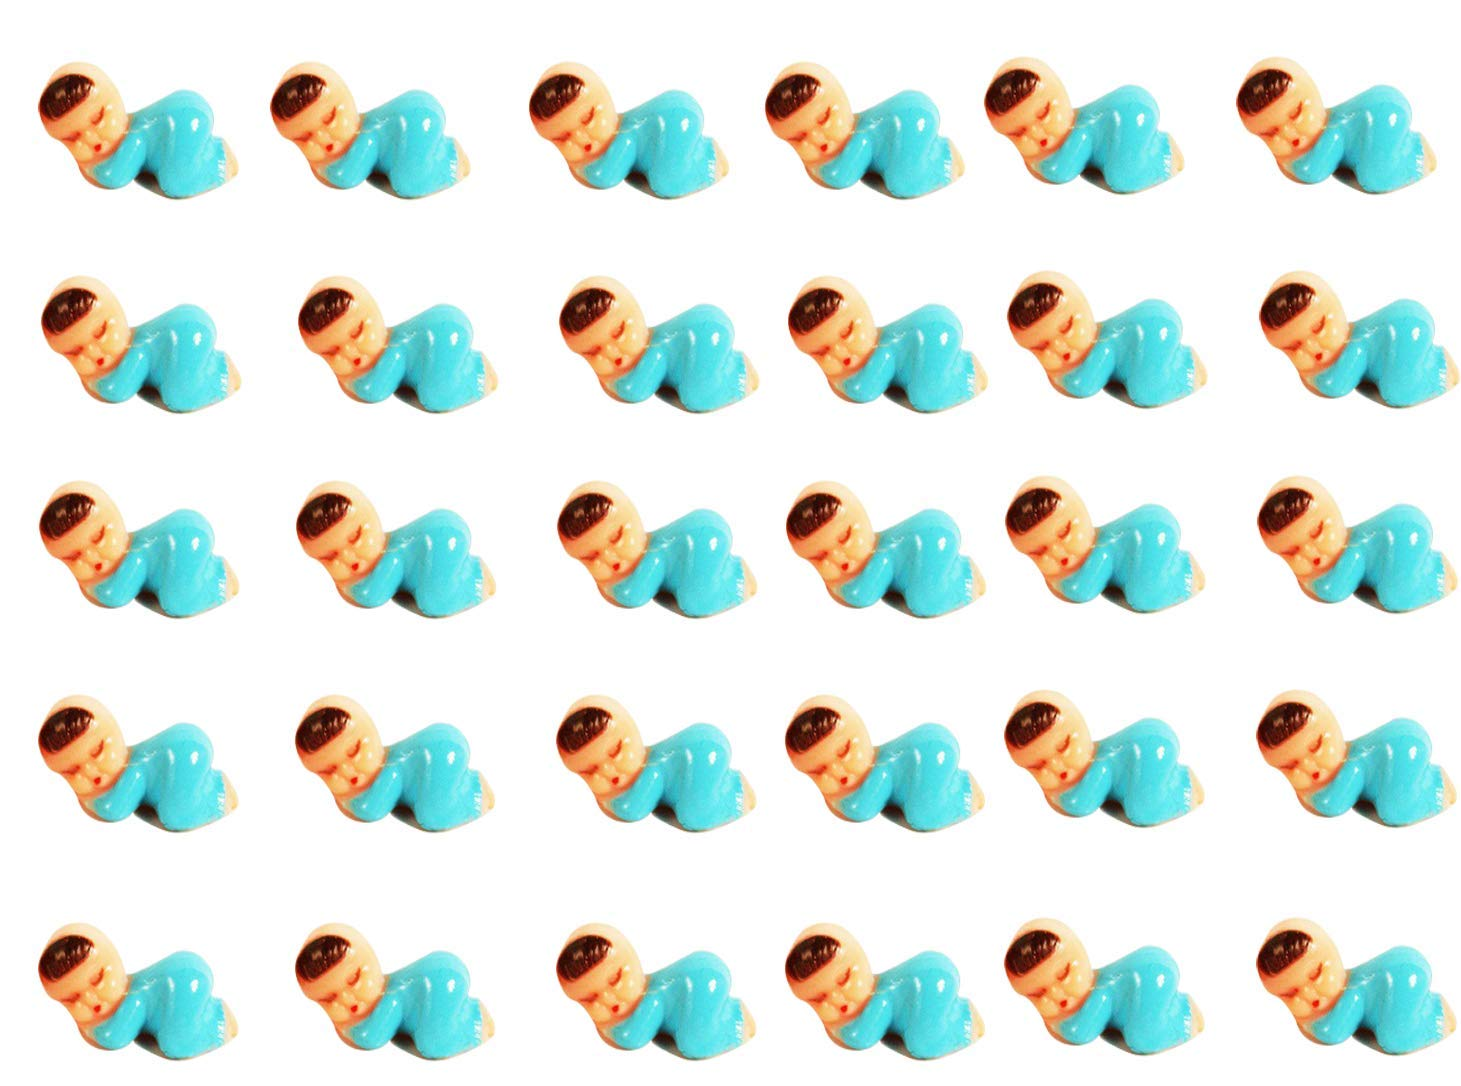 Plastic Babies for Baby Shower Games and King Cakes 72 Pieces